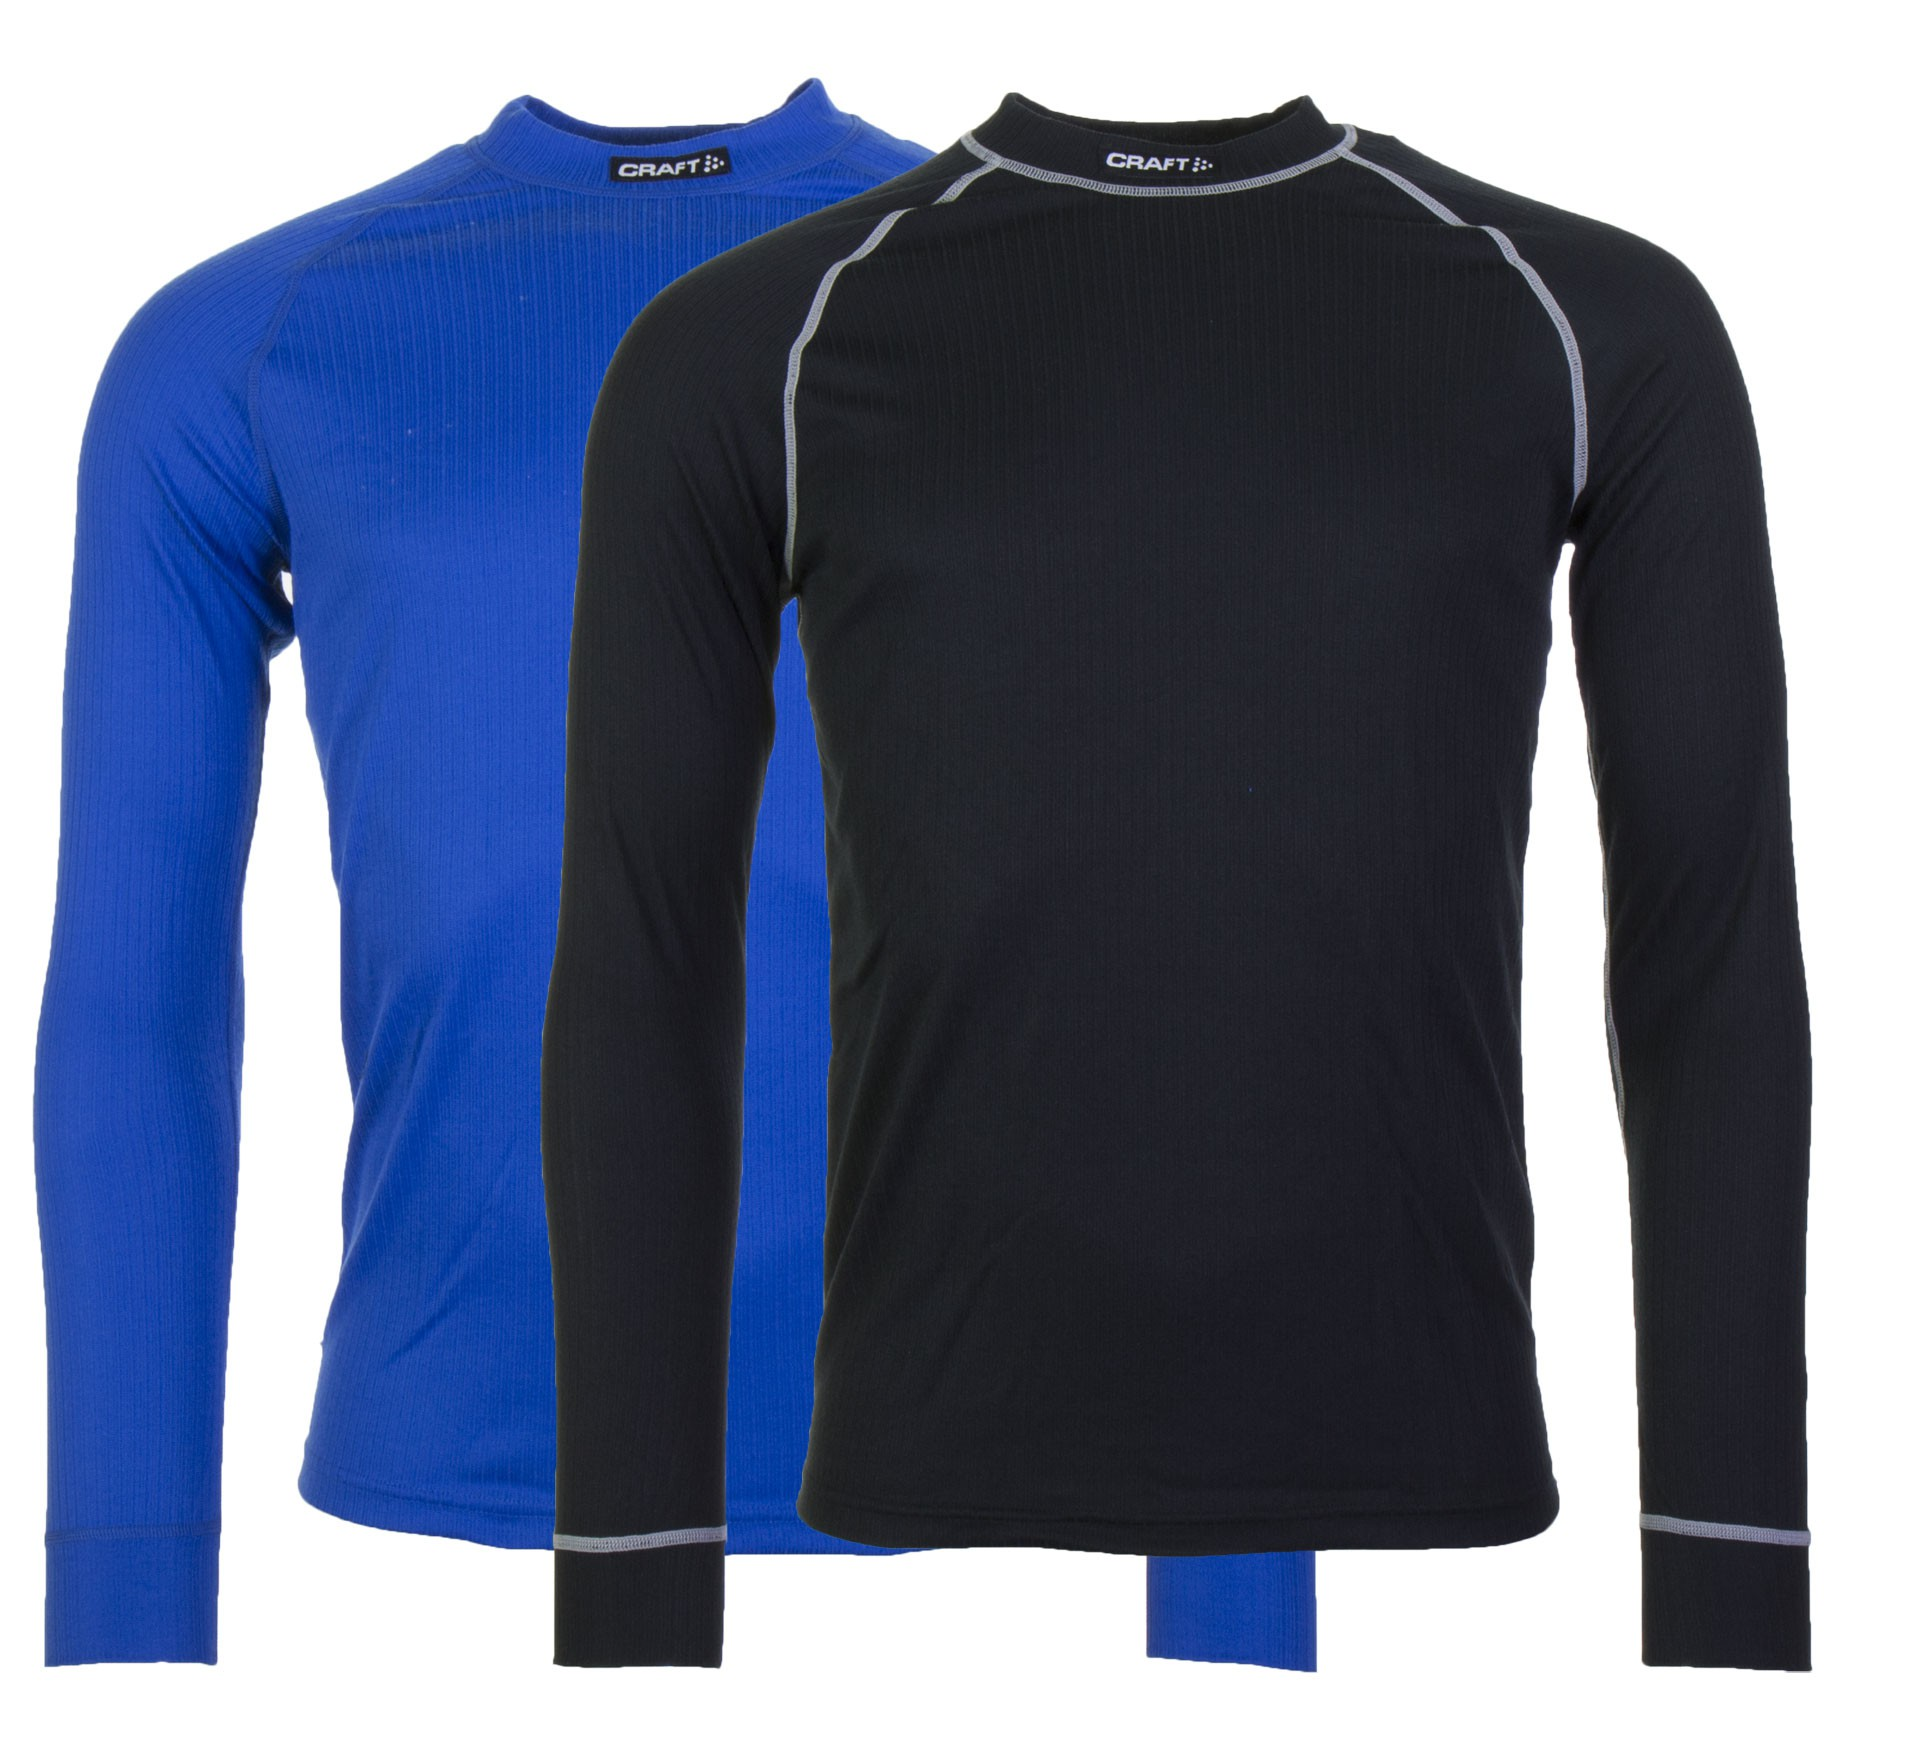 Plutosport - Craft Active Multi Longsleeve Thermo Top (2-pack)